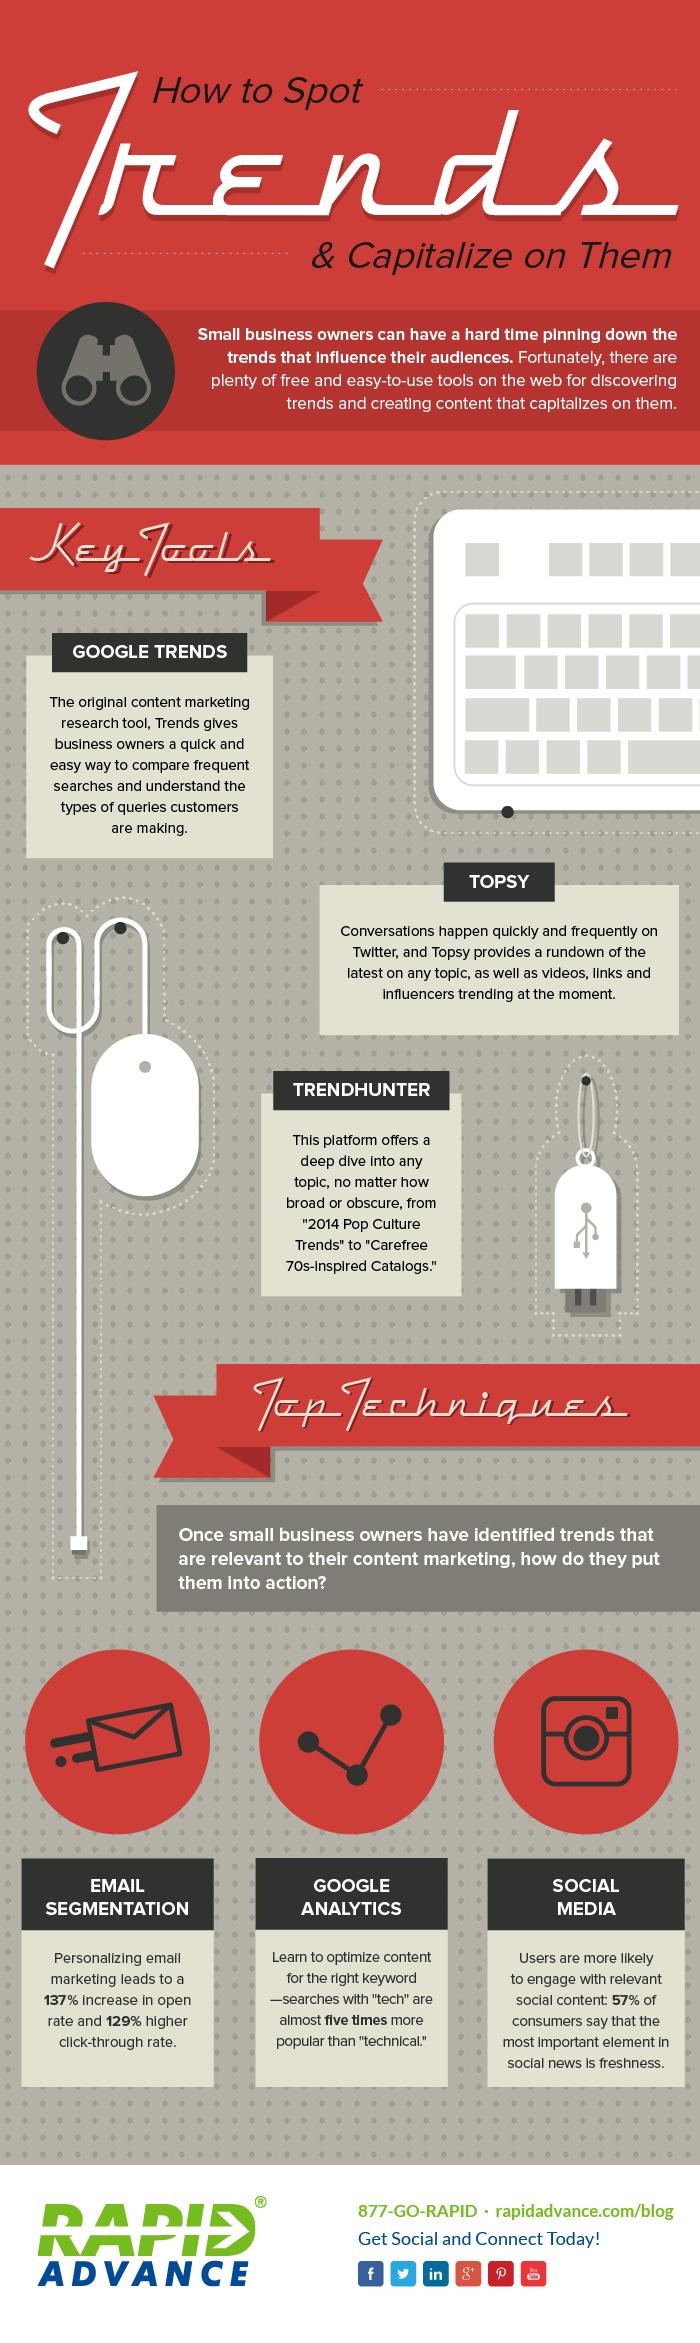 Learn How To Spot New Trends On Internet and Social Media - #infographic